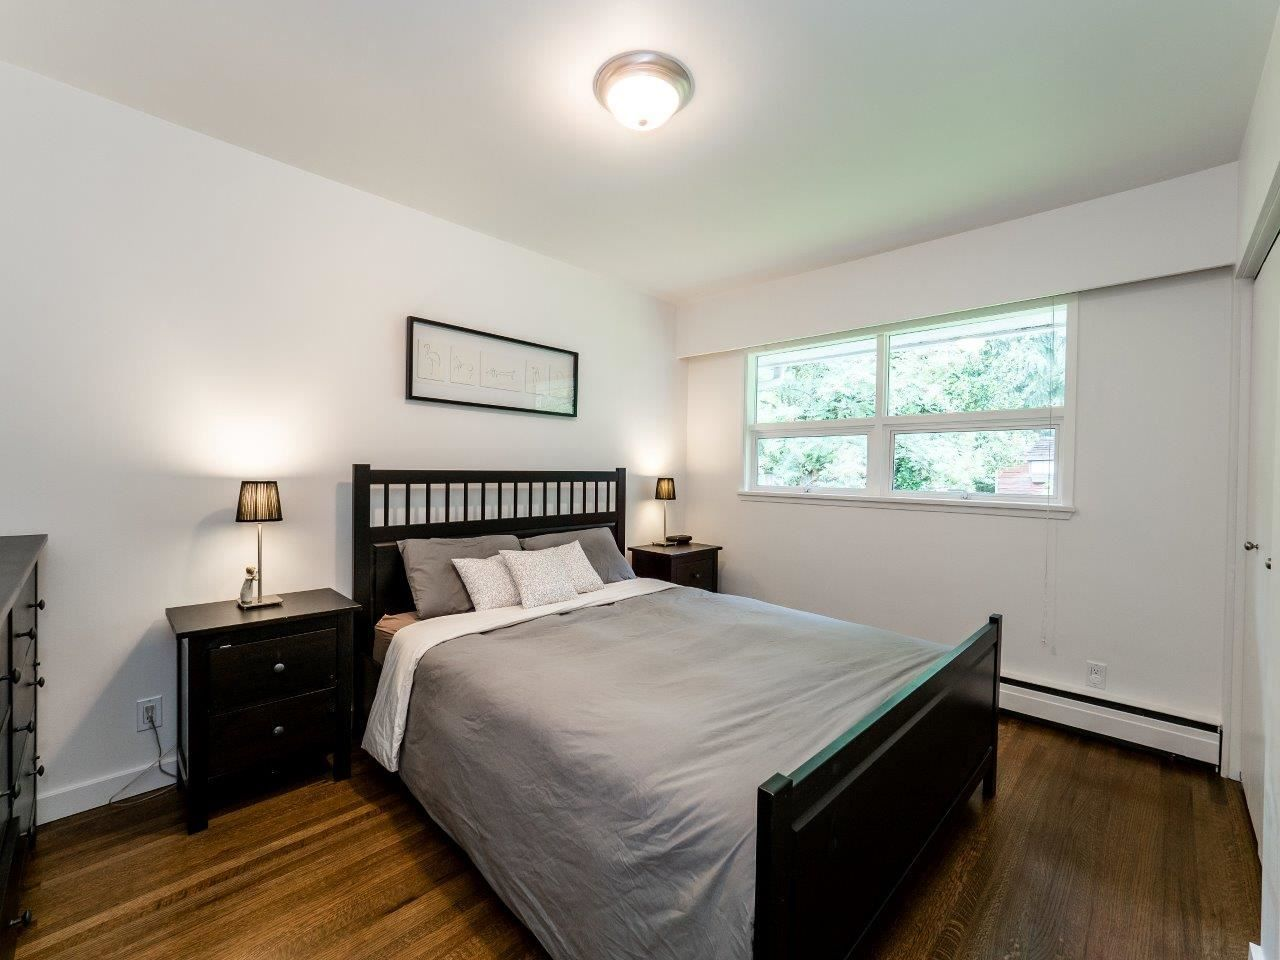 Photo 11: Photos: 1002 CLEMENTS Avenue in North Vancouver: Canyon Heights NV House for sale : MLS®# R2078694